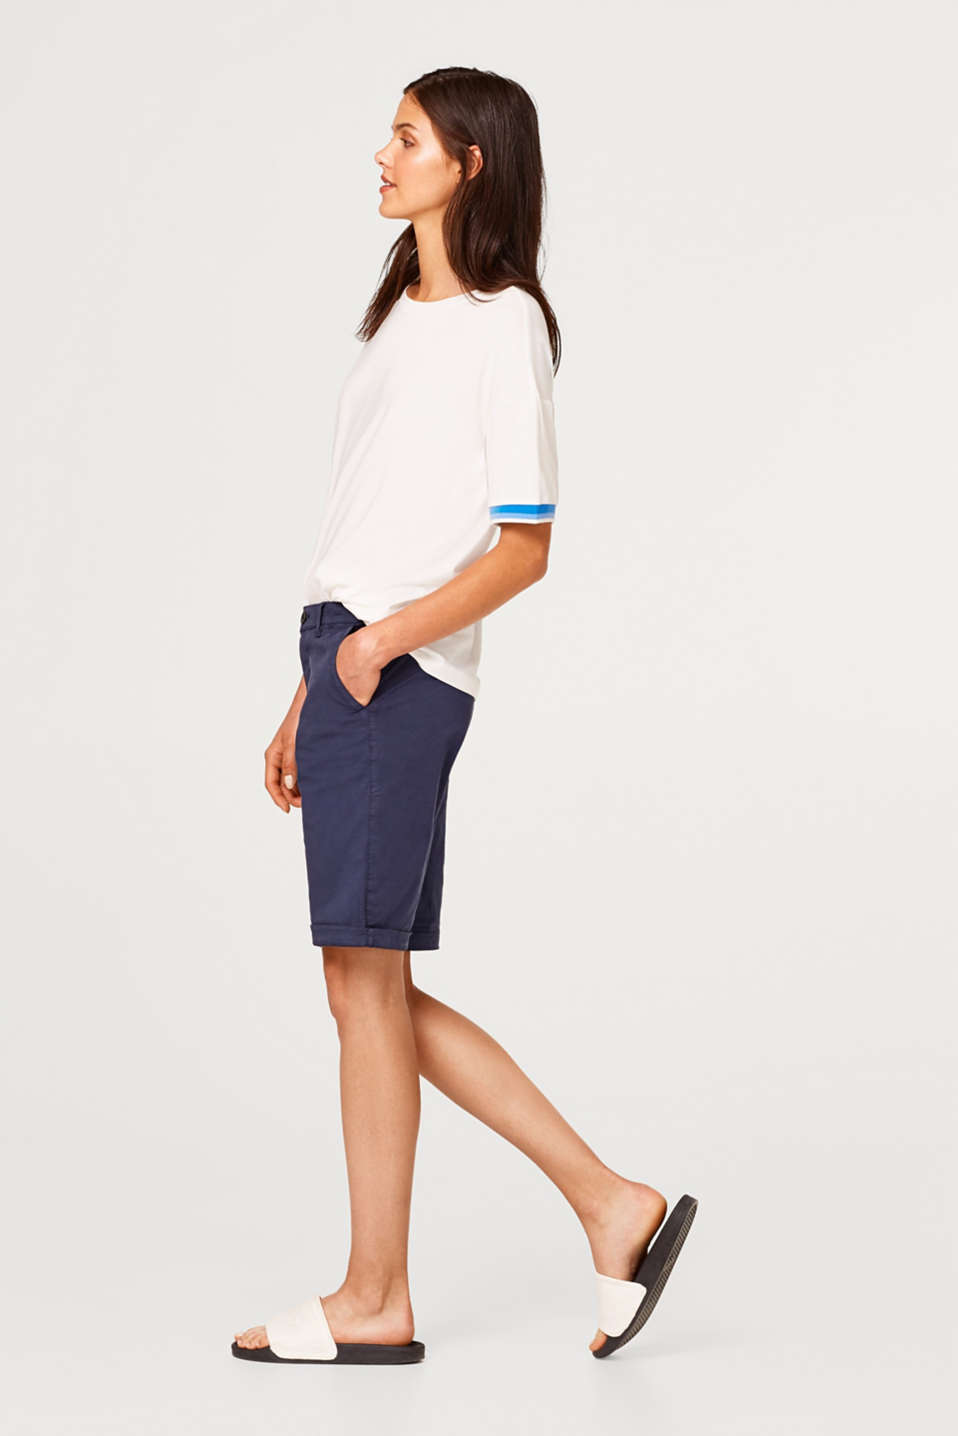 Esprit - Bermuda shorts in a garment-washed look, in stretch cotton